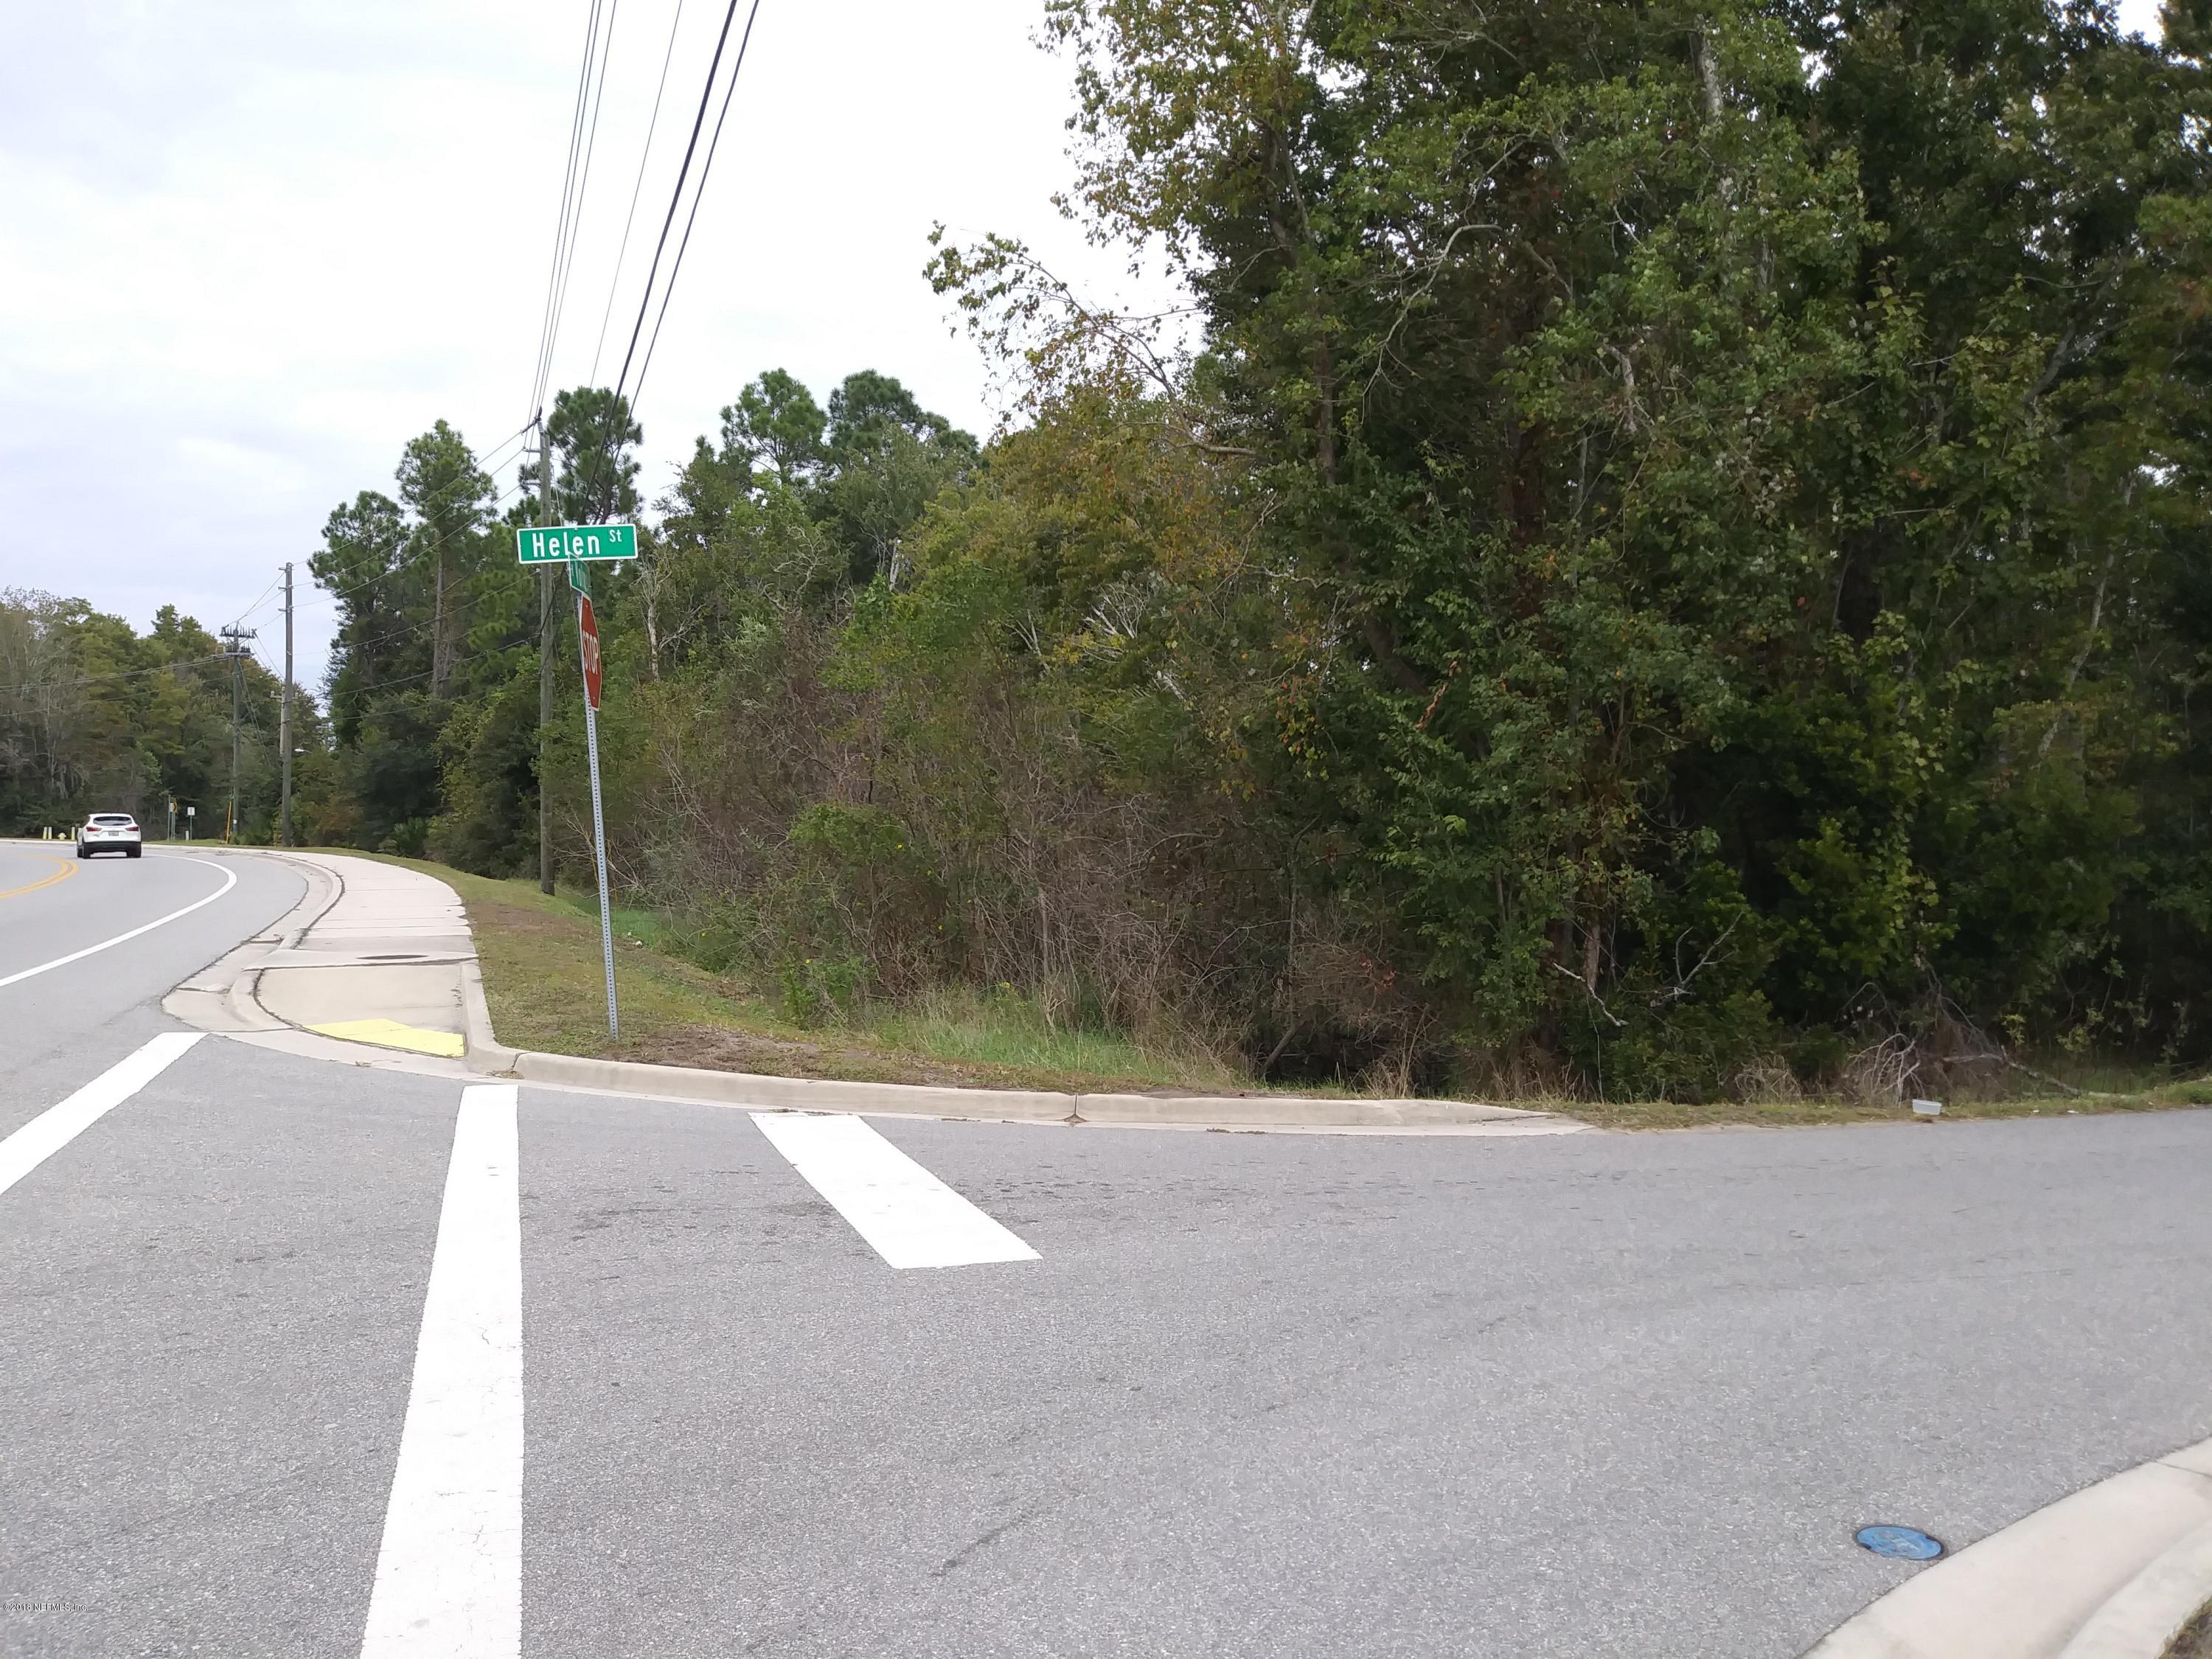 0 VOLUSIA, ST AUGUSTINE, FLORIDA 32084, ,Vacant land,For sale,VOLUSIA,965006